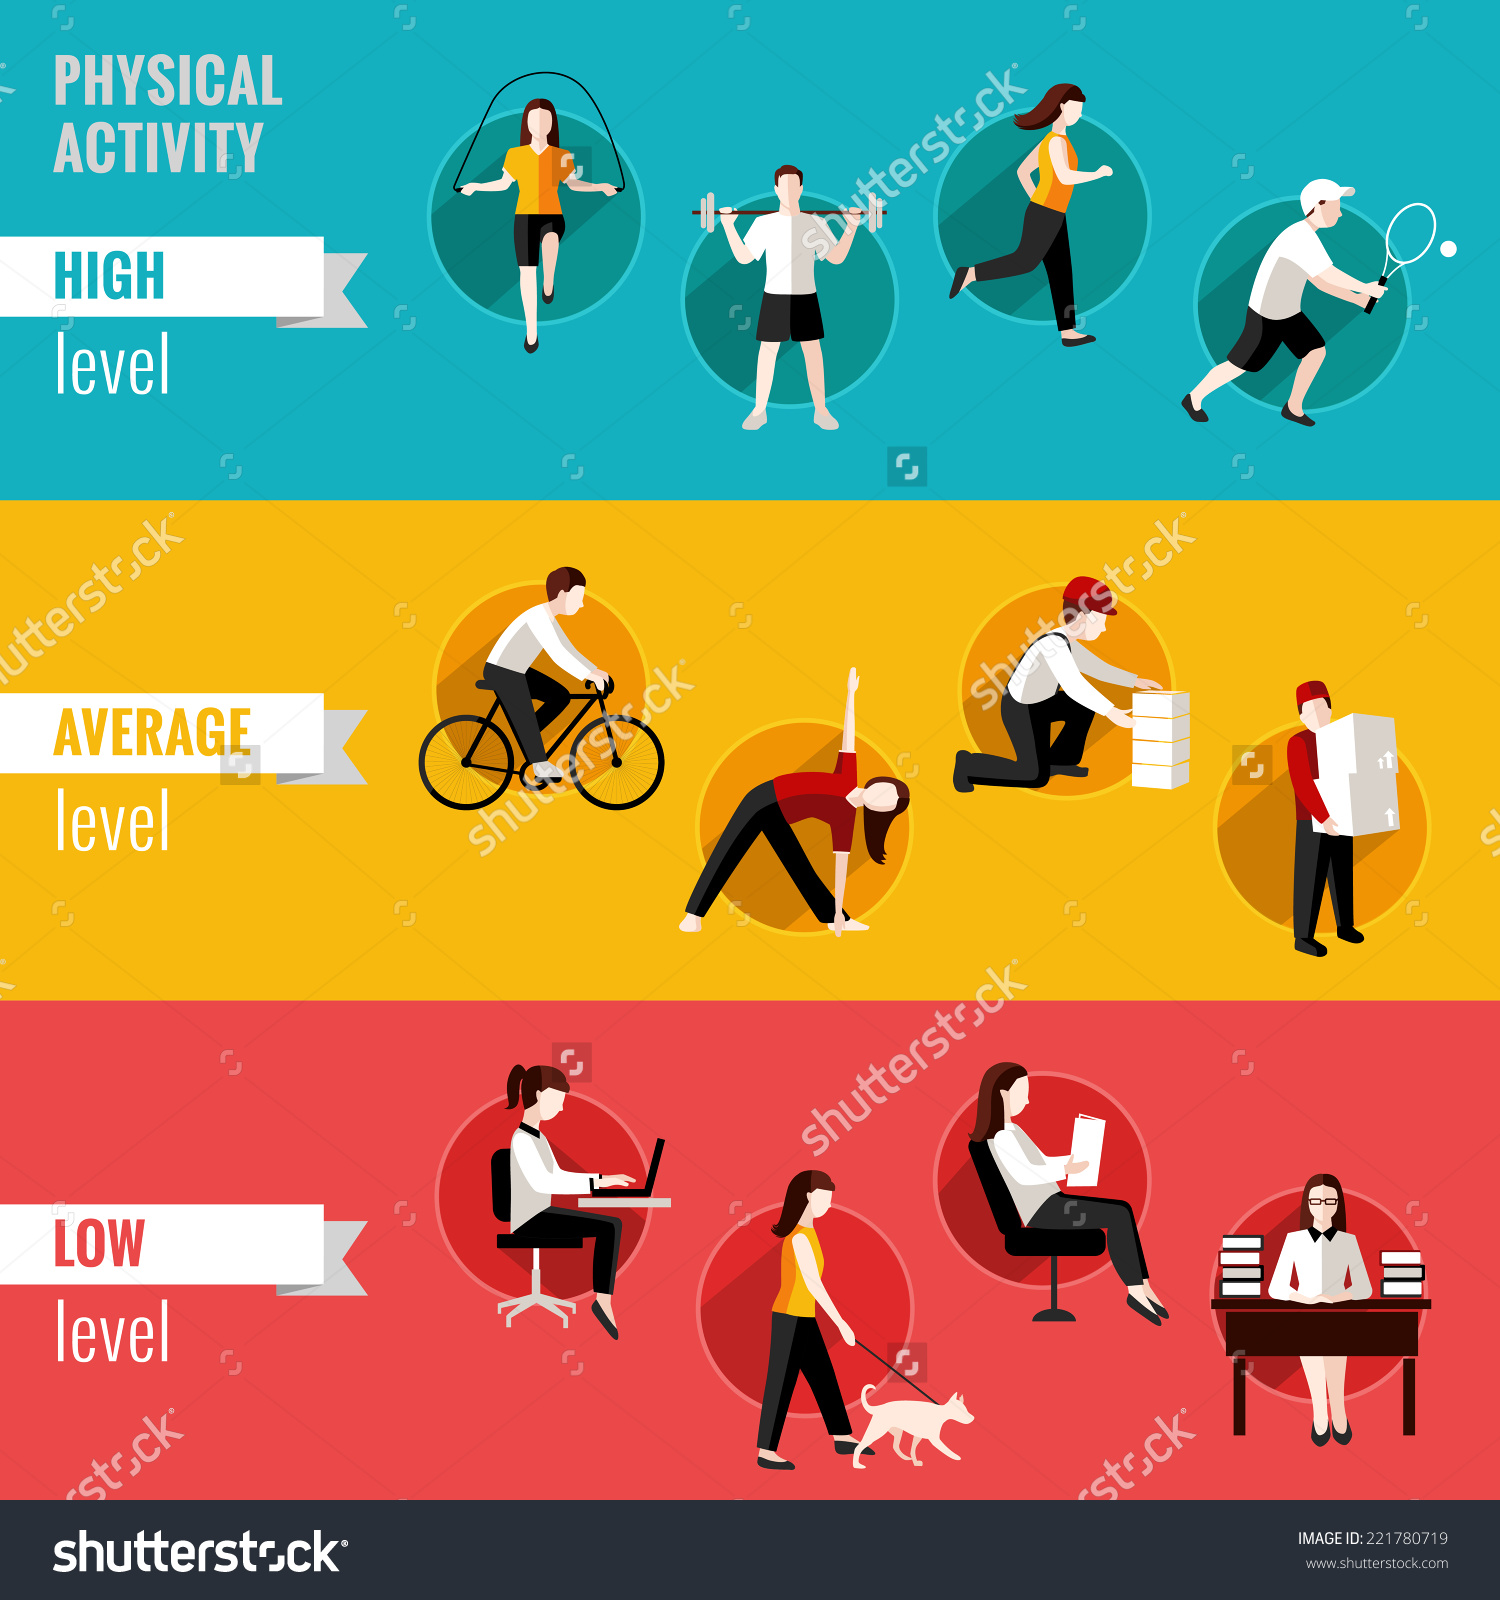 High Average Low Physical Activity Level Stock Vector 221780719.